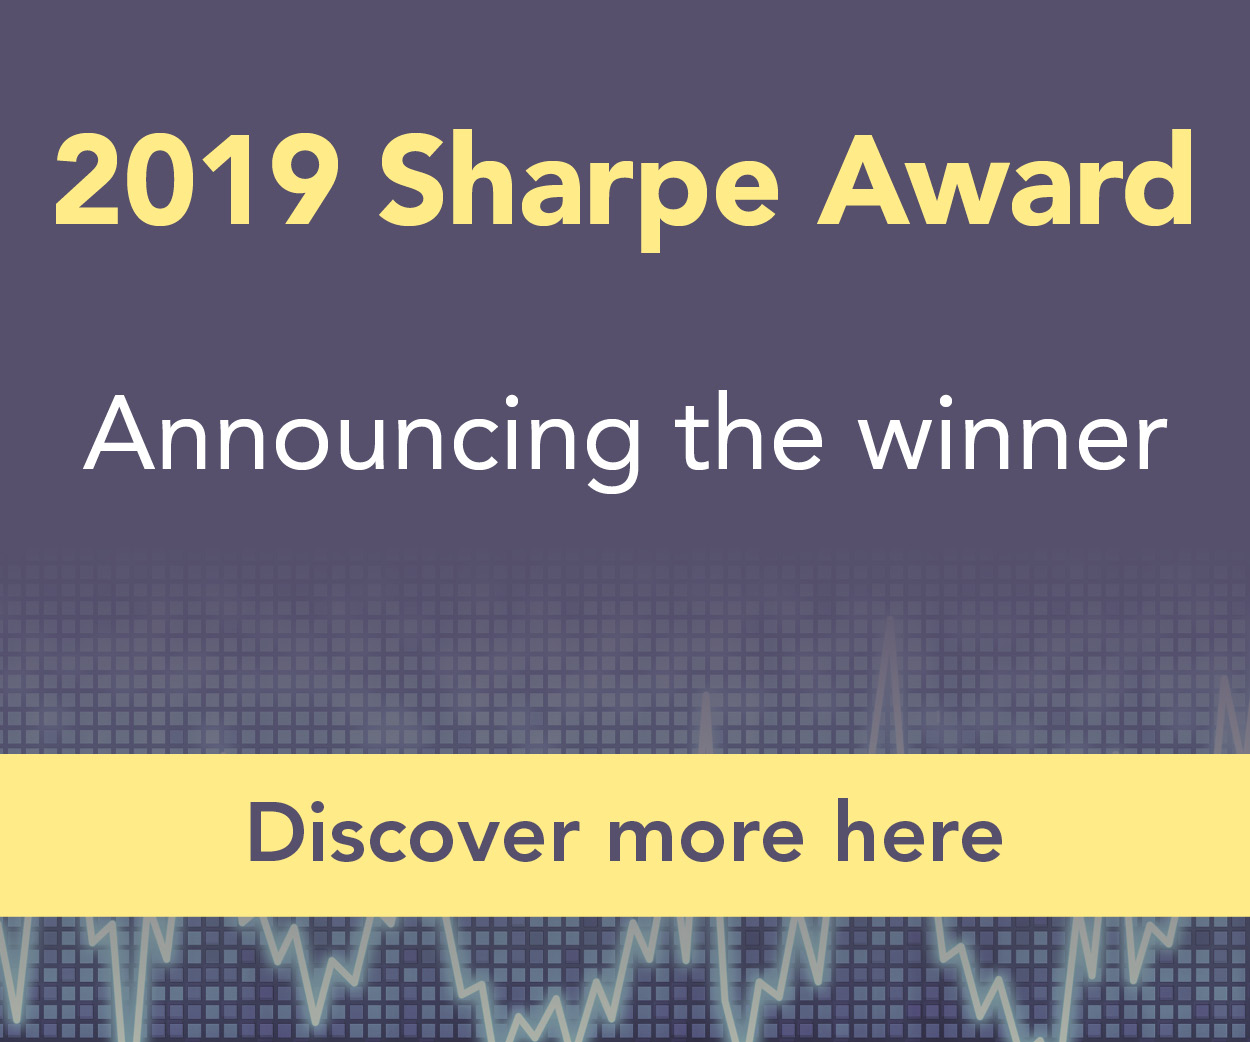 JFQA 2019 Sharpe Award Ballot